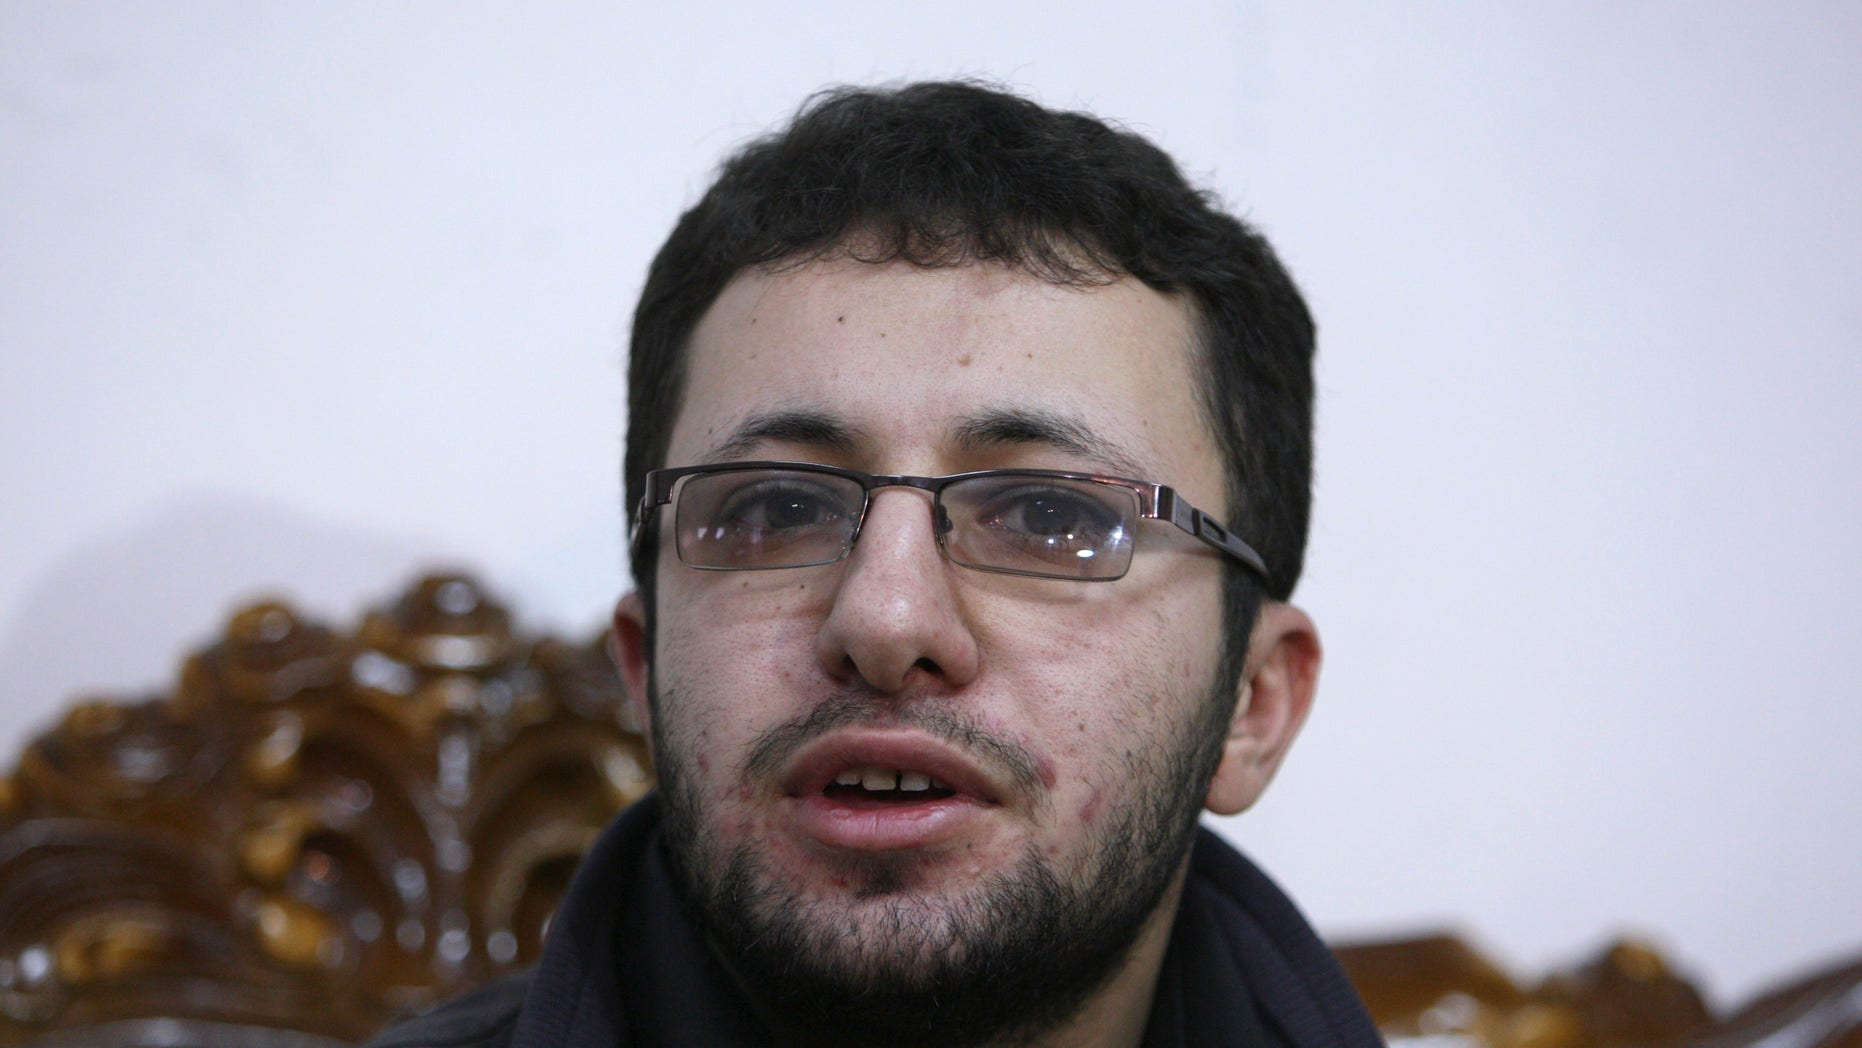 Iranian Sajjad Qaderzadeh, whose mother, Sakineh Mohammadi Ashtiani, has been sentenced to death by stoning for adultery, speaks with the media in a news briefing in the northwestern city of Tabriz, Iran, Saturday, Jan. 1, 2011. Ashtiani's sentence of death by stoning, which Iran has put on hold, has brought harsh condemnation from the U.S., the European Union and rights groups who are demanding Tehran stay the execution. It has further strained Iran's relations with world powers, already tense over the country's disputed nuclear program.